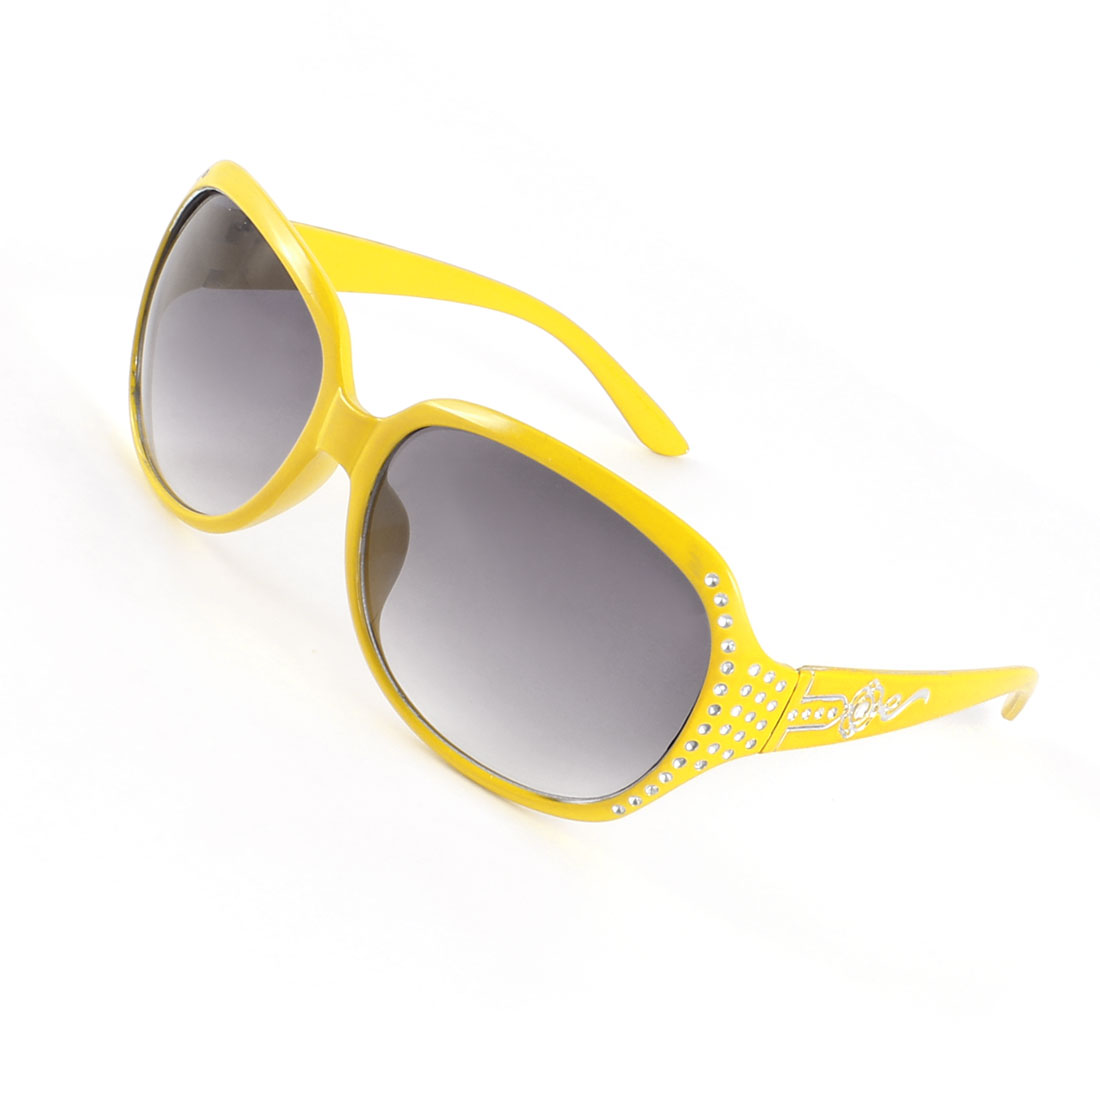 Tinted Lens Digital Decor Sunglasses Yellow for Women Lady